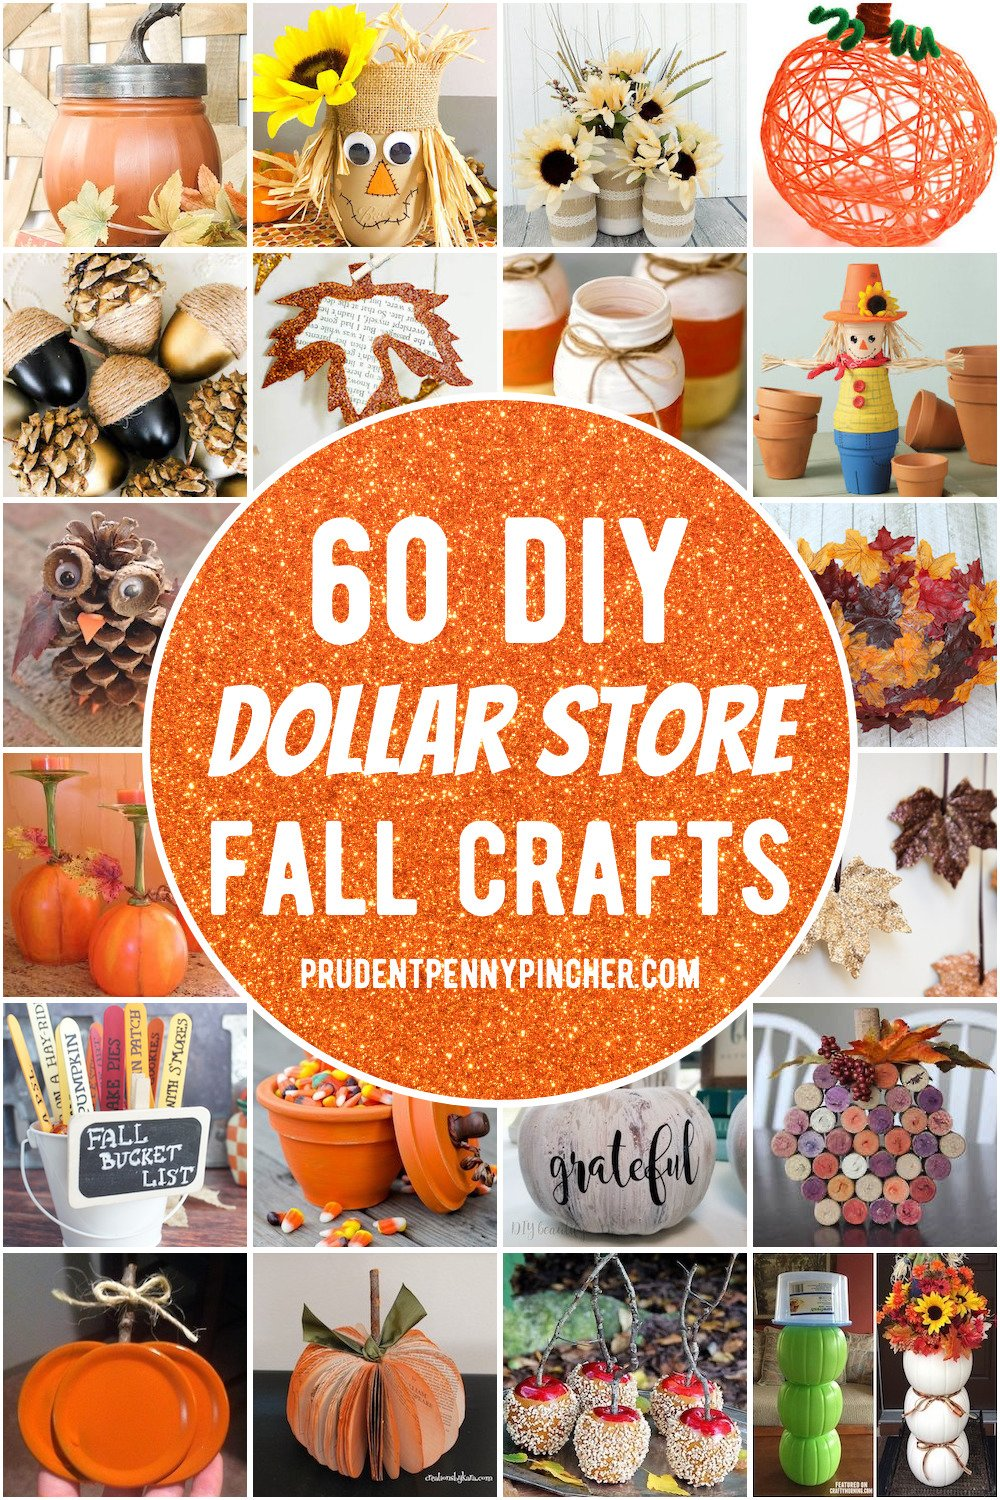 20 Dollar Store Fall Crafts   Prudent Penny Pincher